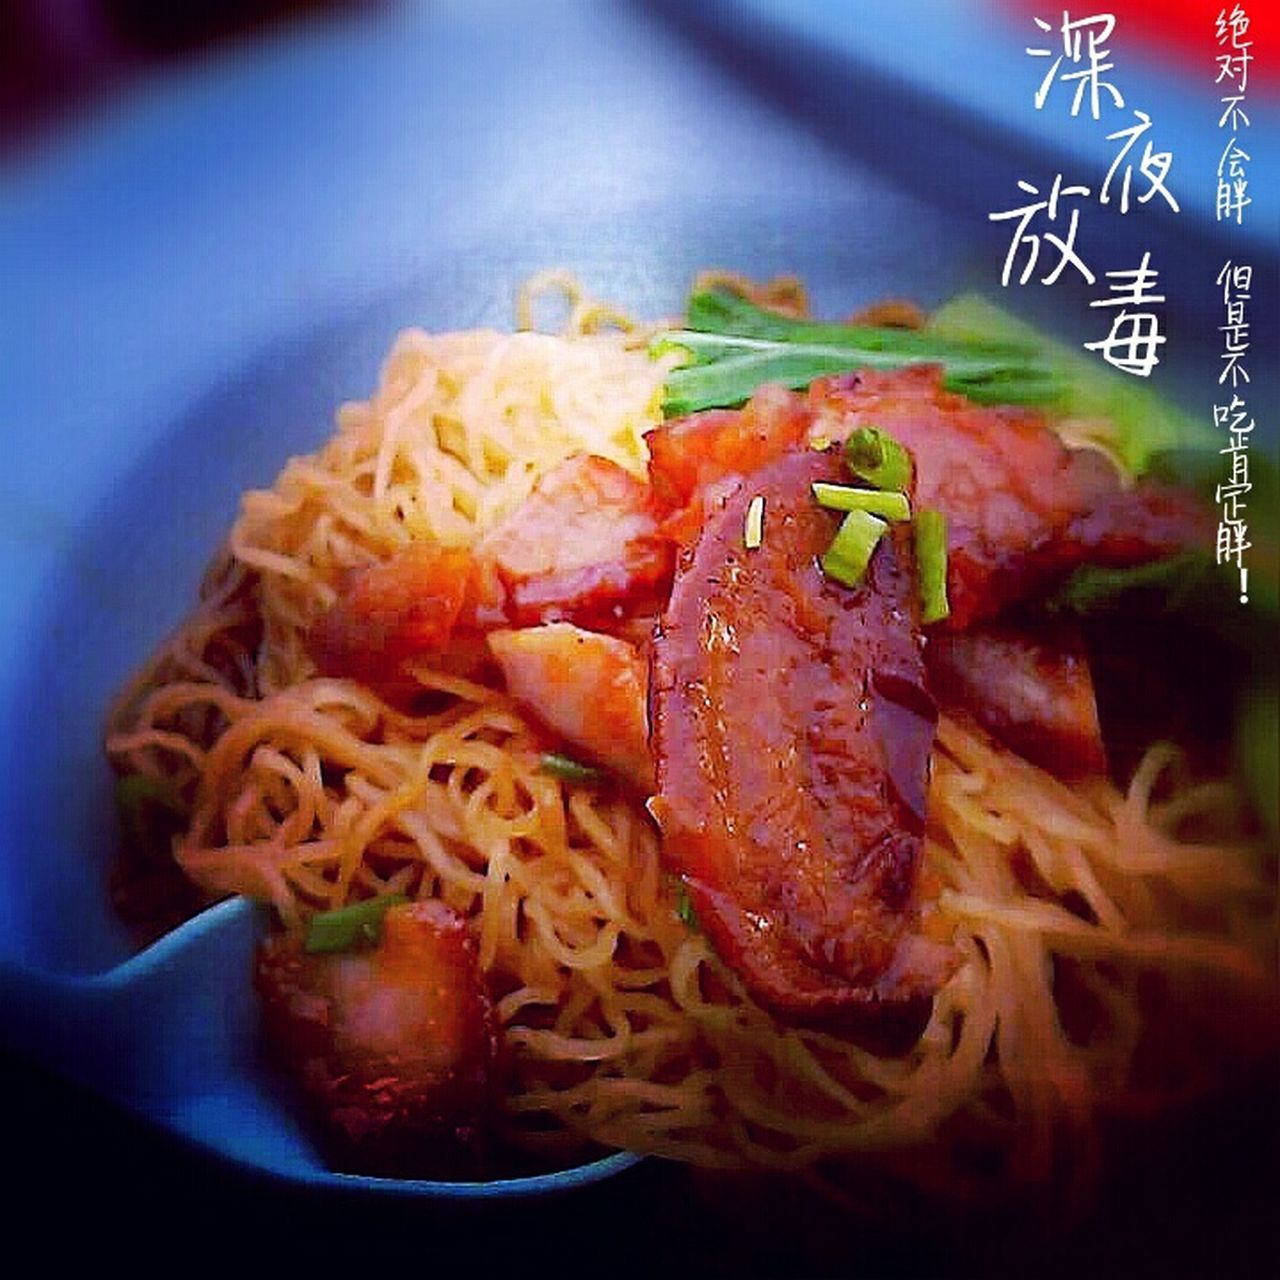 Wantan Mee Wantan Noodle Char Siew Noodle Food Ready-to-eat Food And Drink Asian Food Indoors  Ipohfood Delicious Malaysian Food Foodblogger Foodphotography People And Places Ipohtown Food And Drink ShareTheMeal The Color Of Technology First Eyeem Photo Night Food Art Ipoh,Malaysia